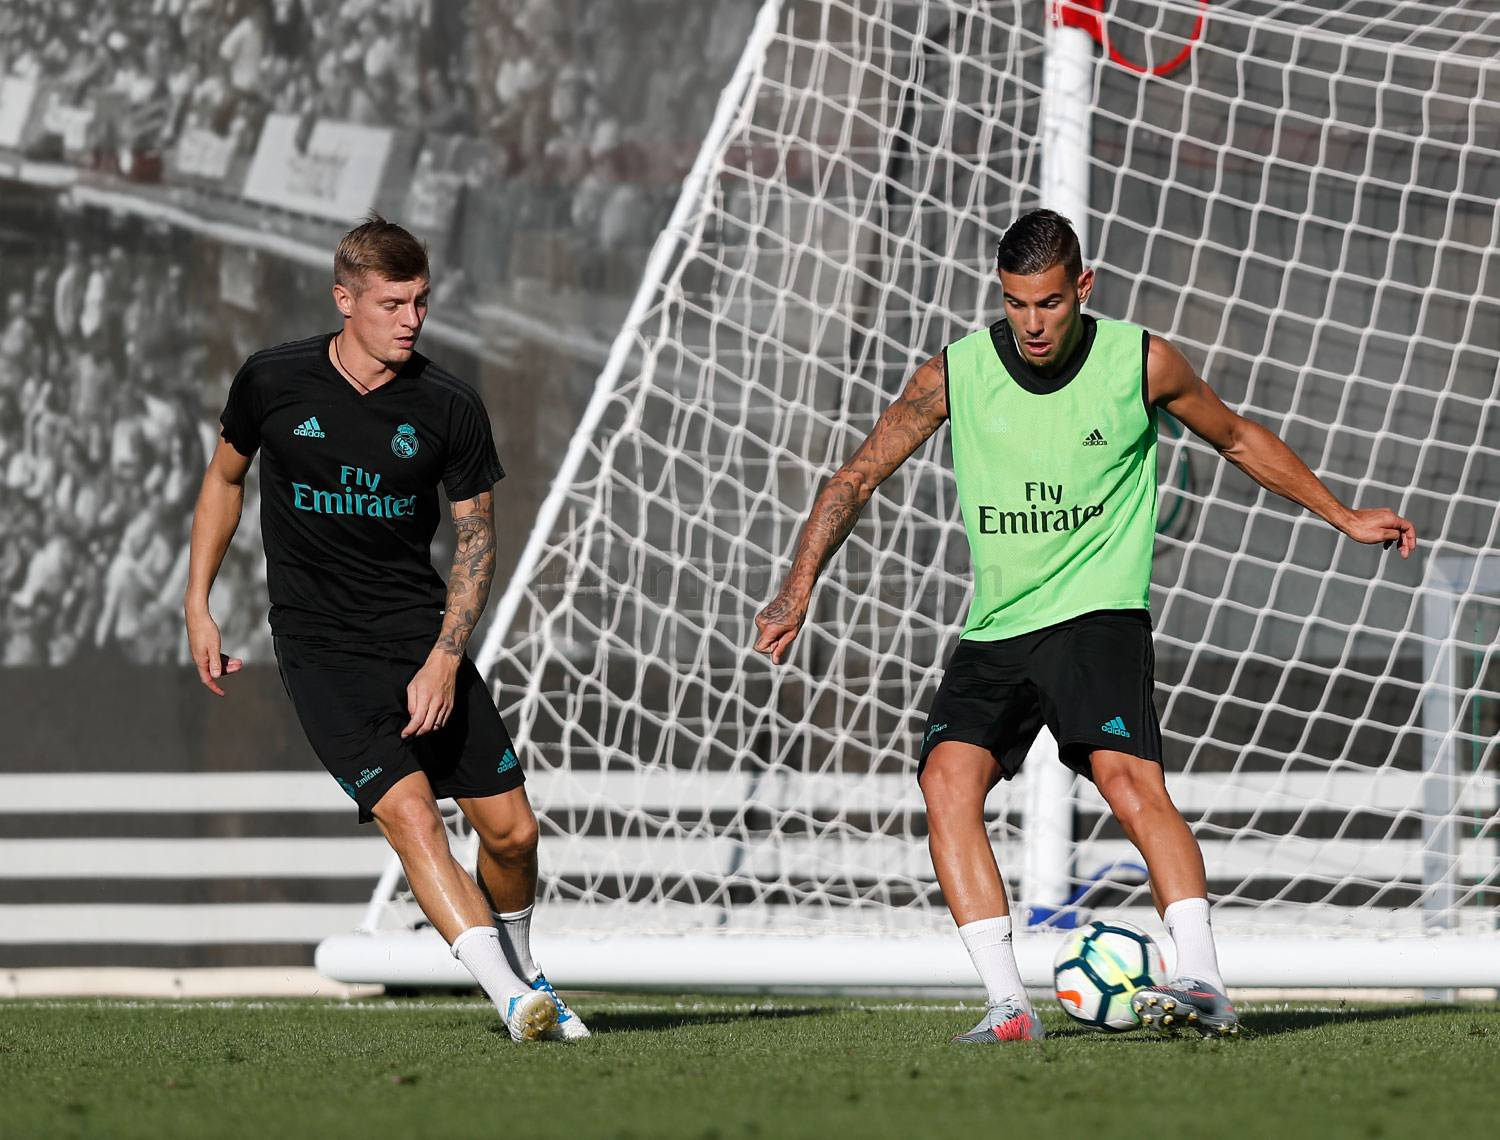 Real Madrid - Entrenamiento del Real Madrid - 09-10-2017